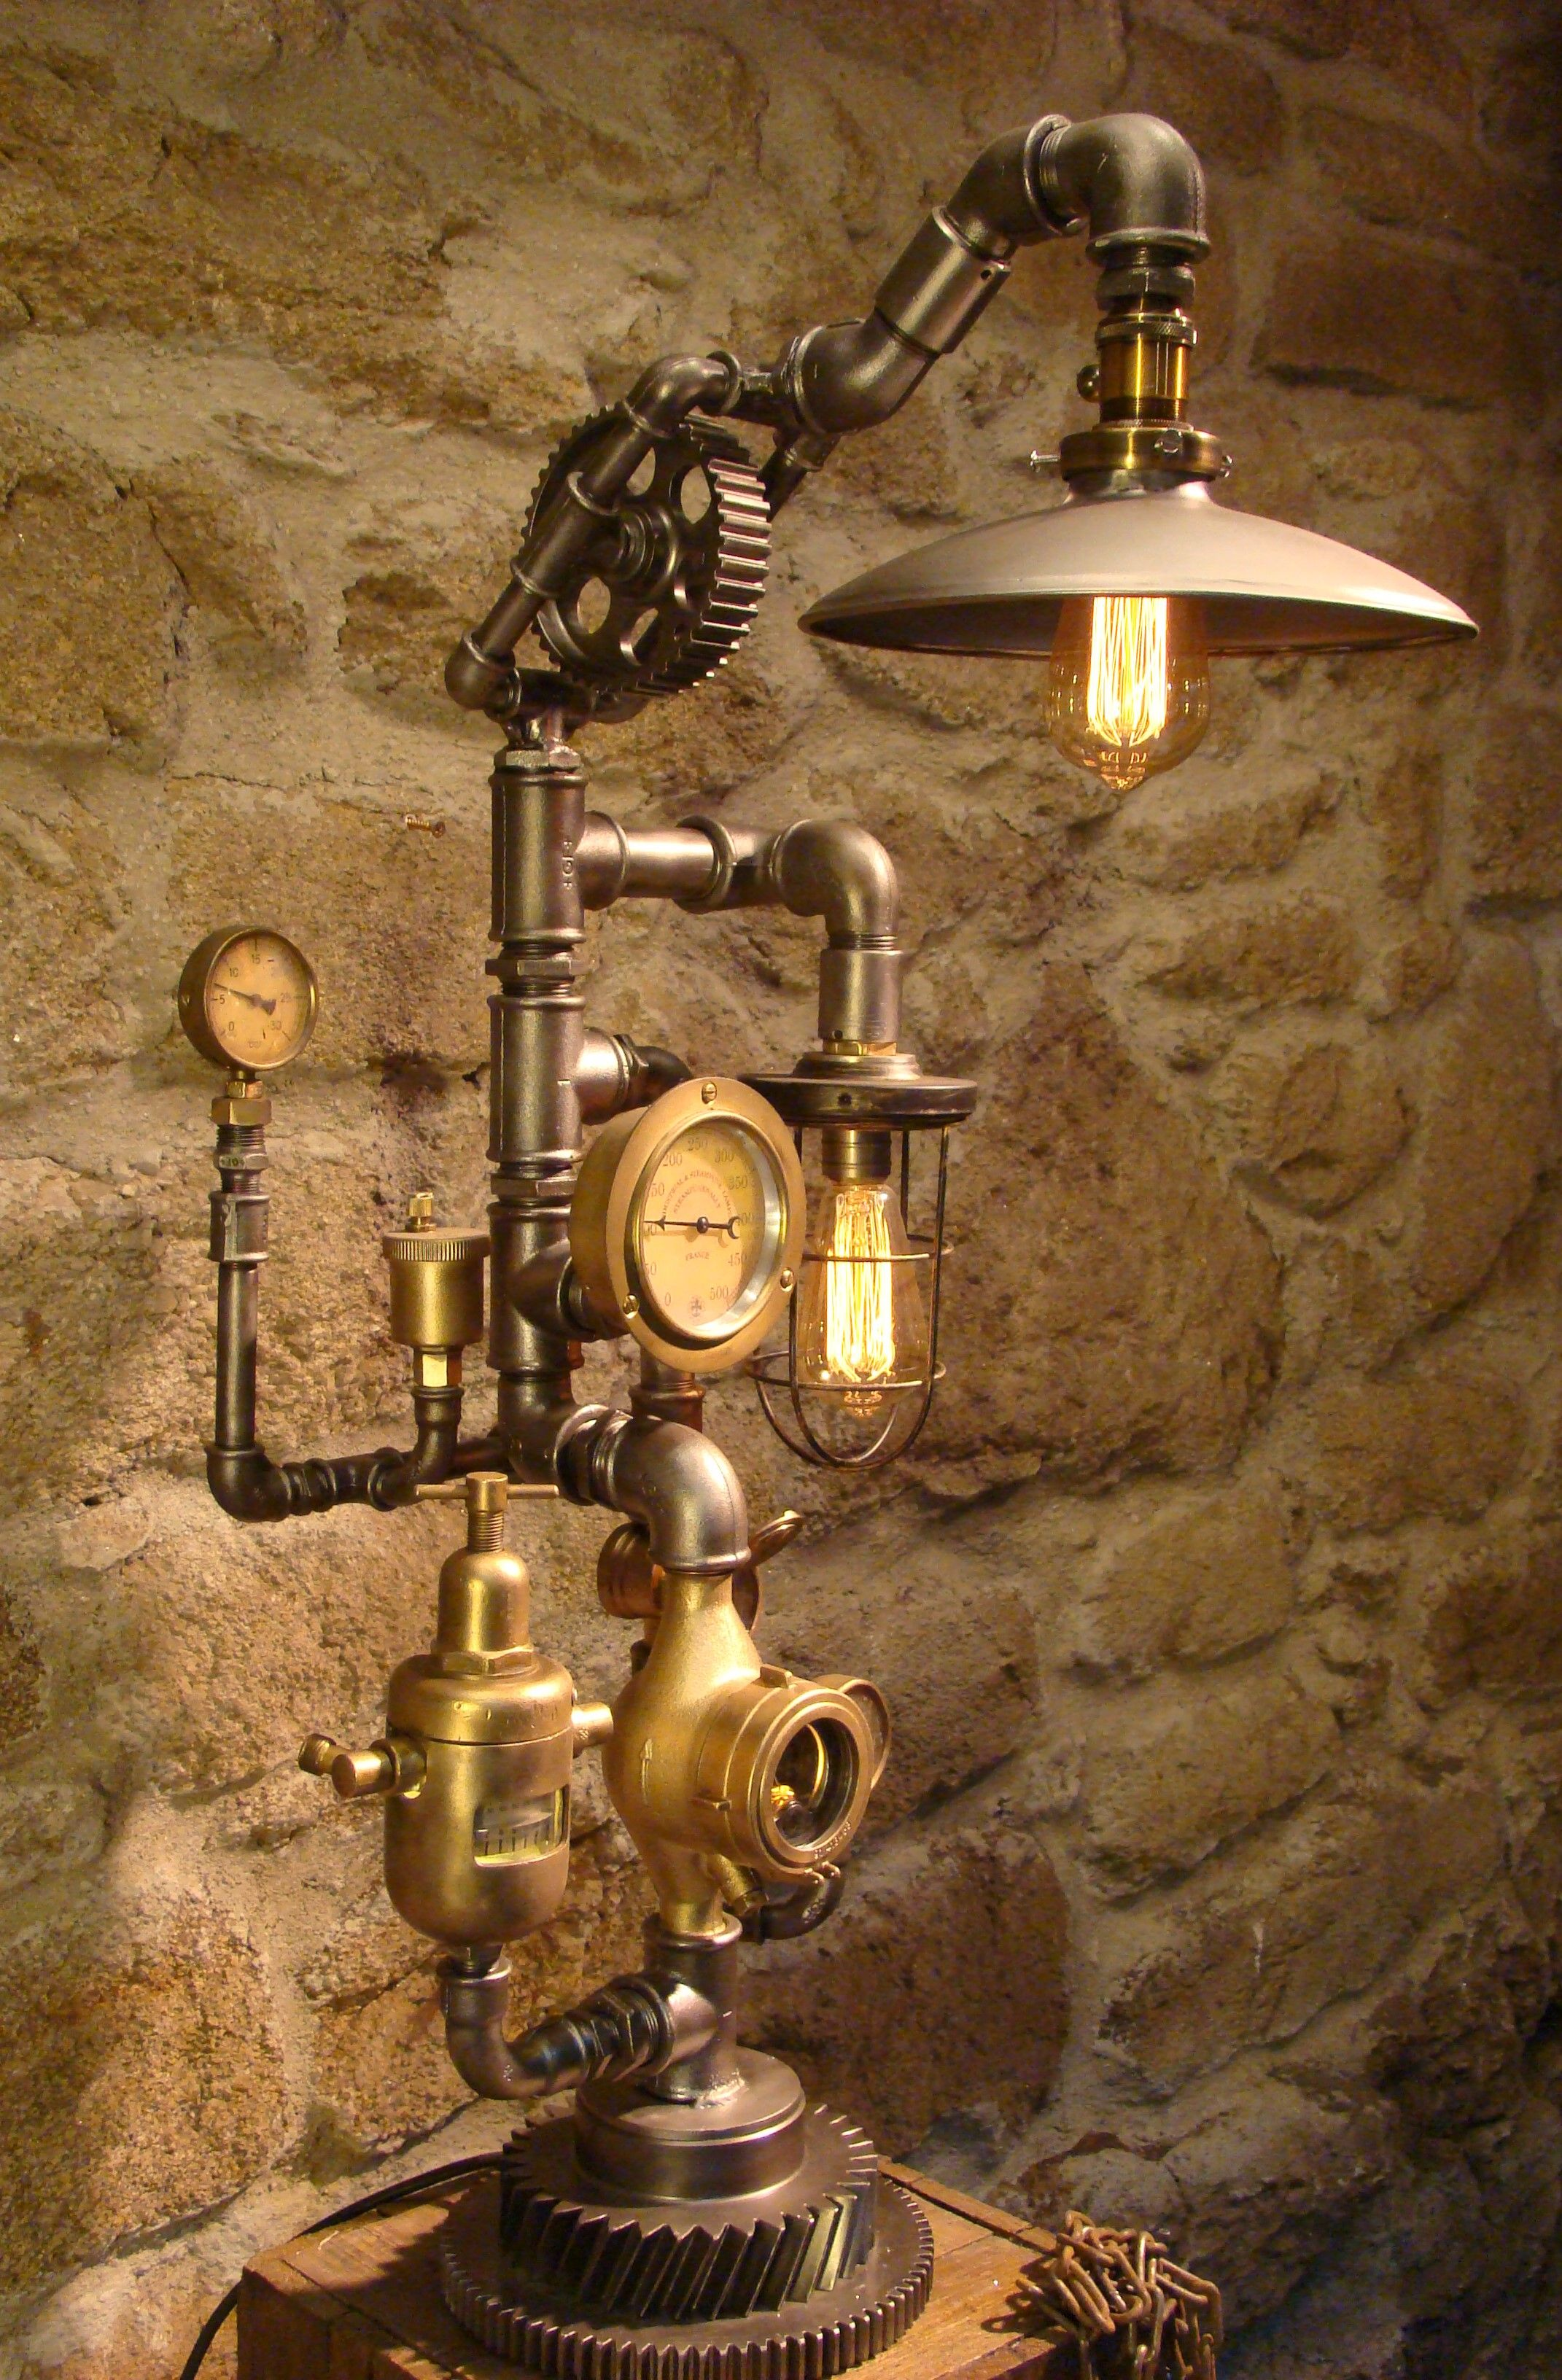 Made By Steampunkwally Caractere 1925 Lampe Steampunk Idee Deco Industrielle Lampe Industrielle